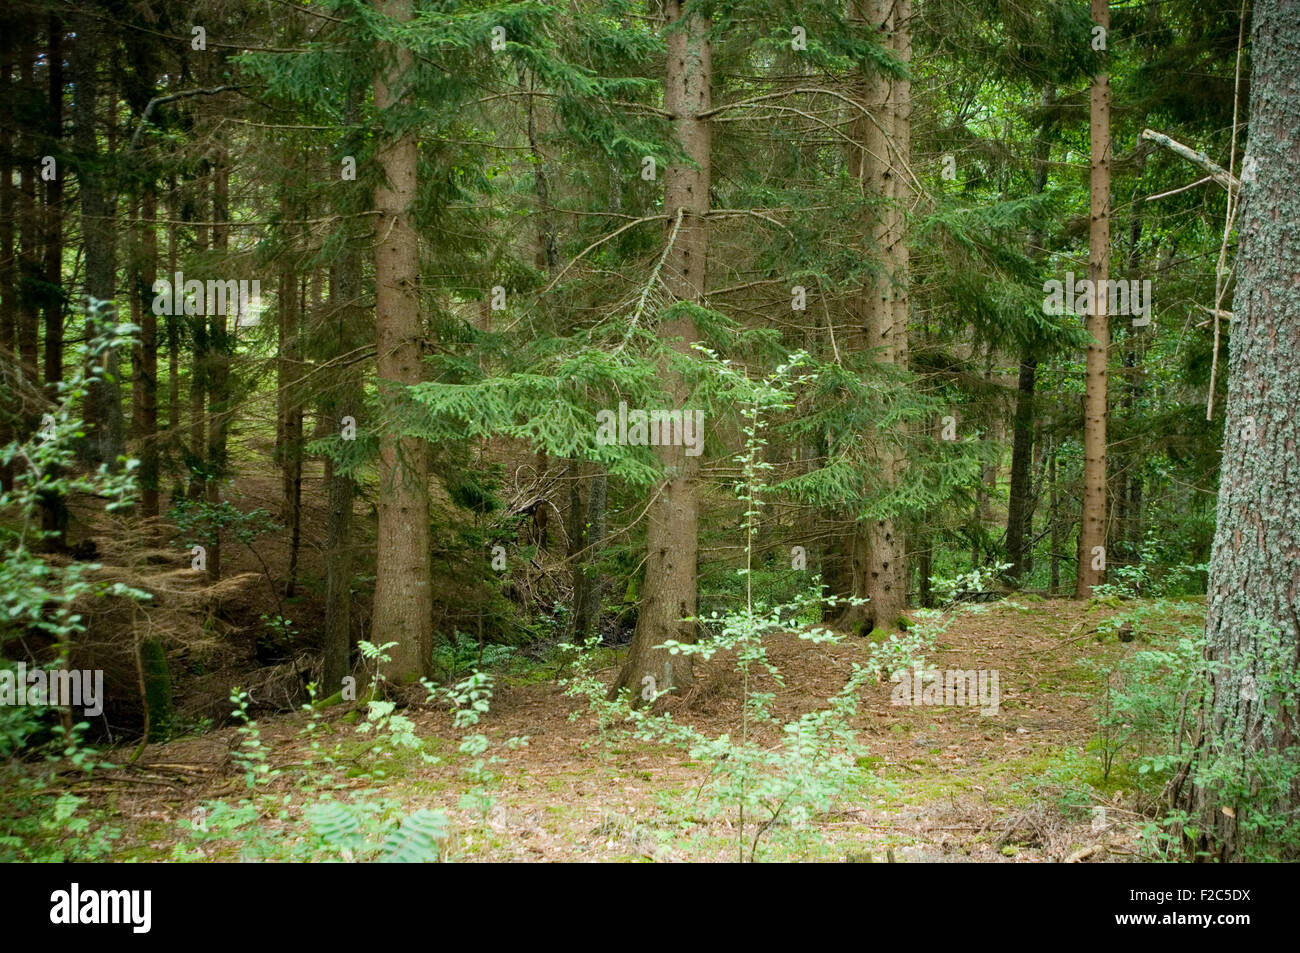 sweden swedish forest pine tree trees timber industry tall dense thick managed sustainable forestry - Stock Image